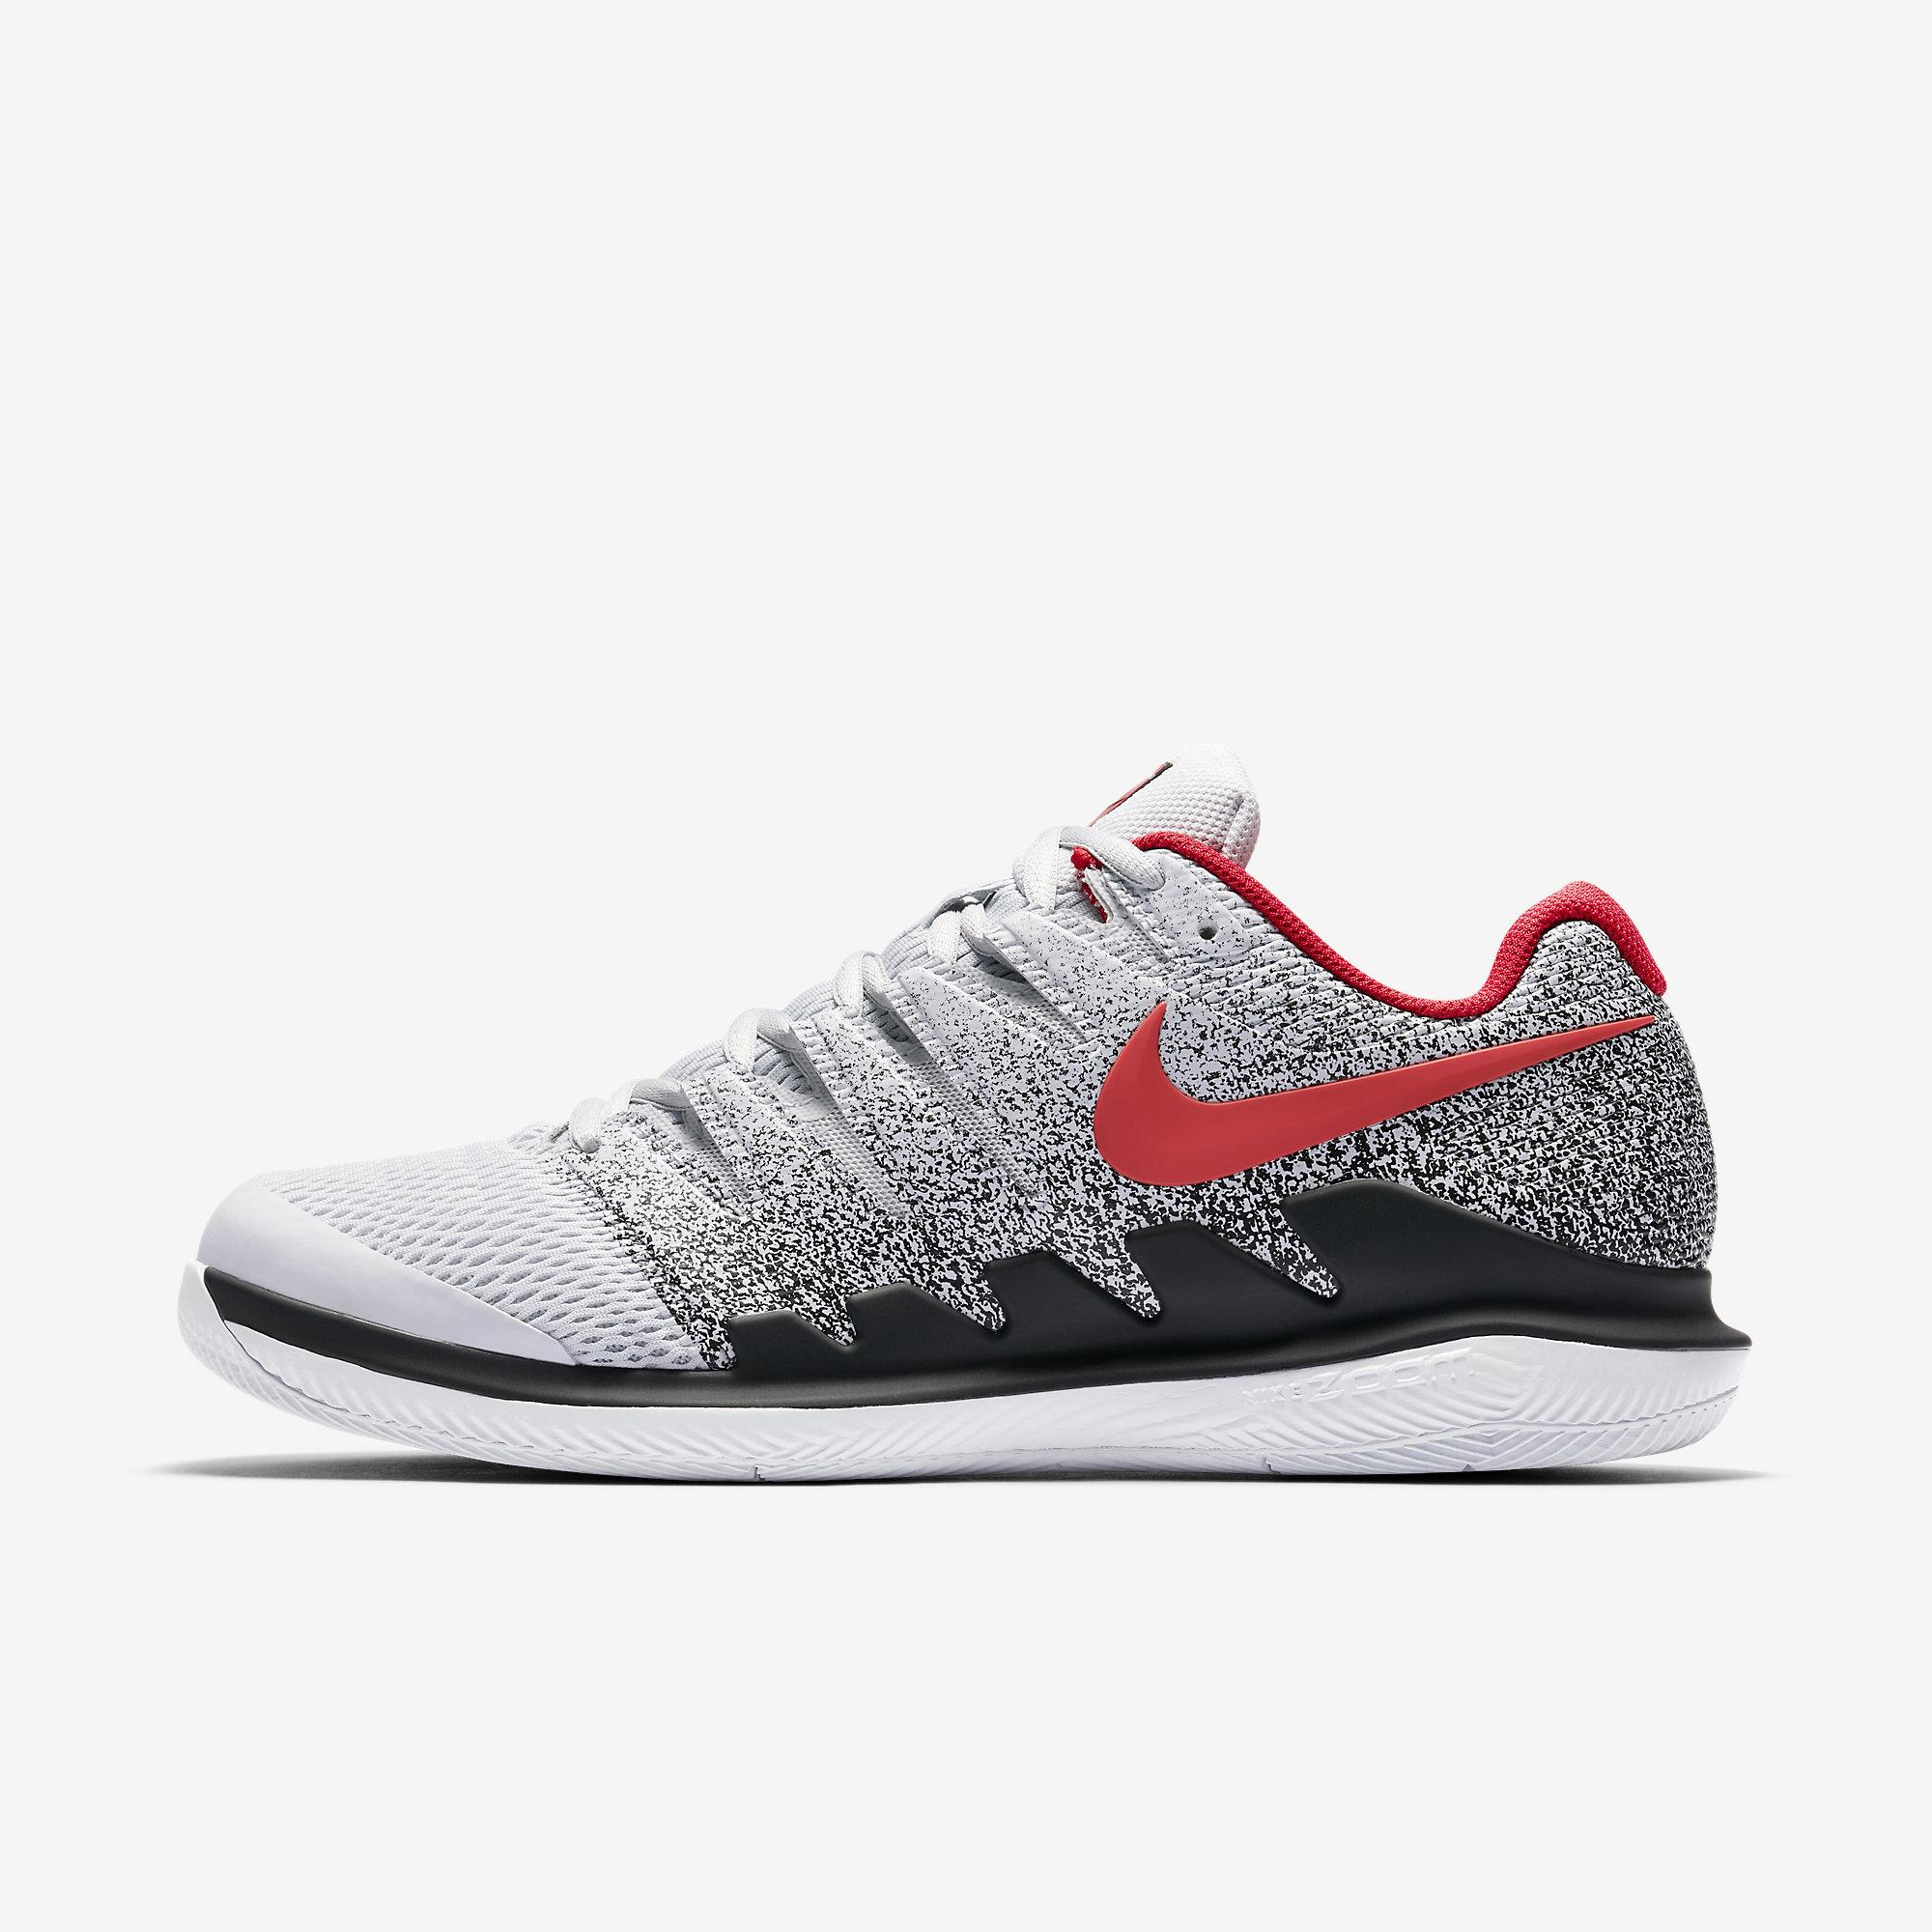 b44ad24734d4 Nike Mens Air Zoom Vapor X Tennis Shoes - Pure Platinum Red - Tennisnuts.com